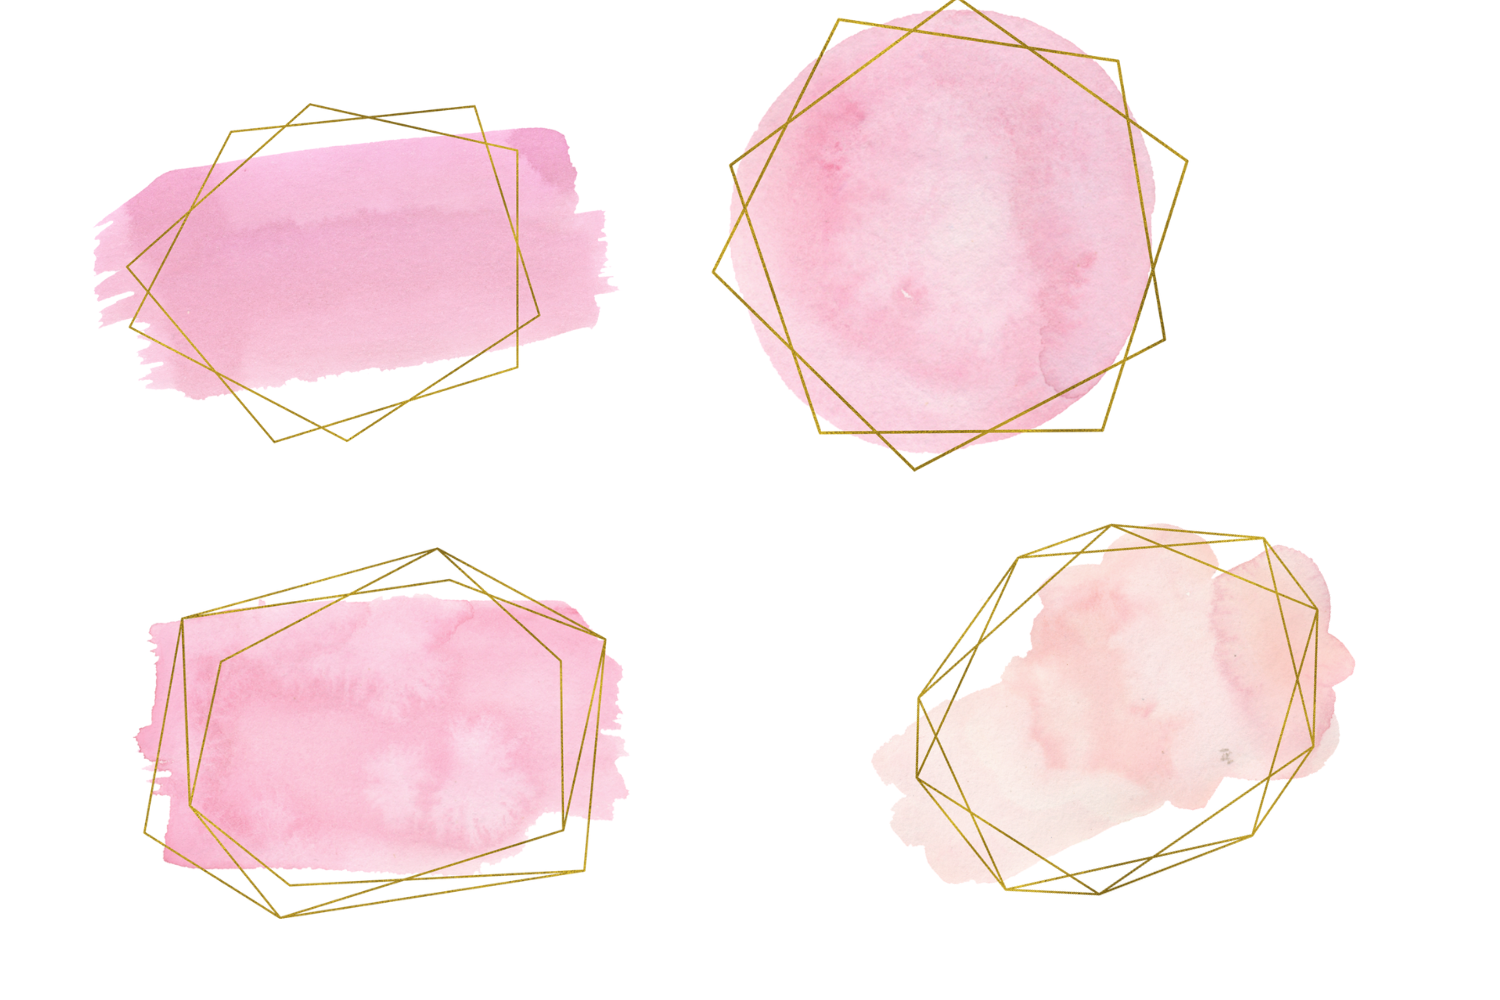 Pink and gold frames clip art, Watercolor design elements example image 4